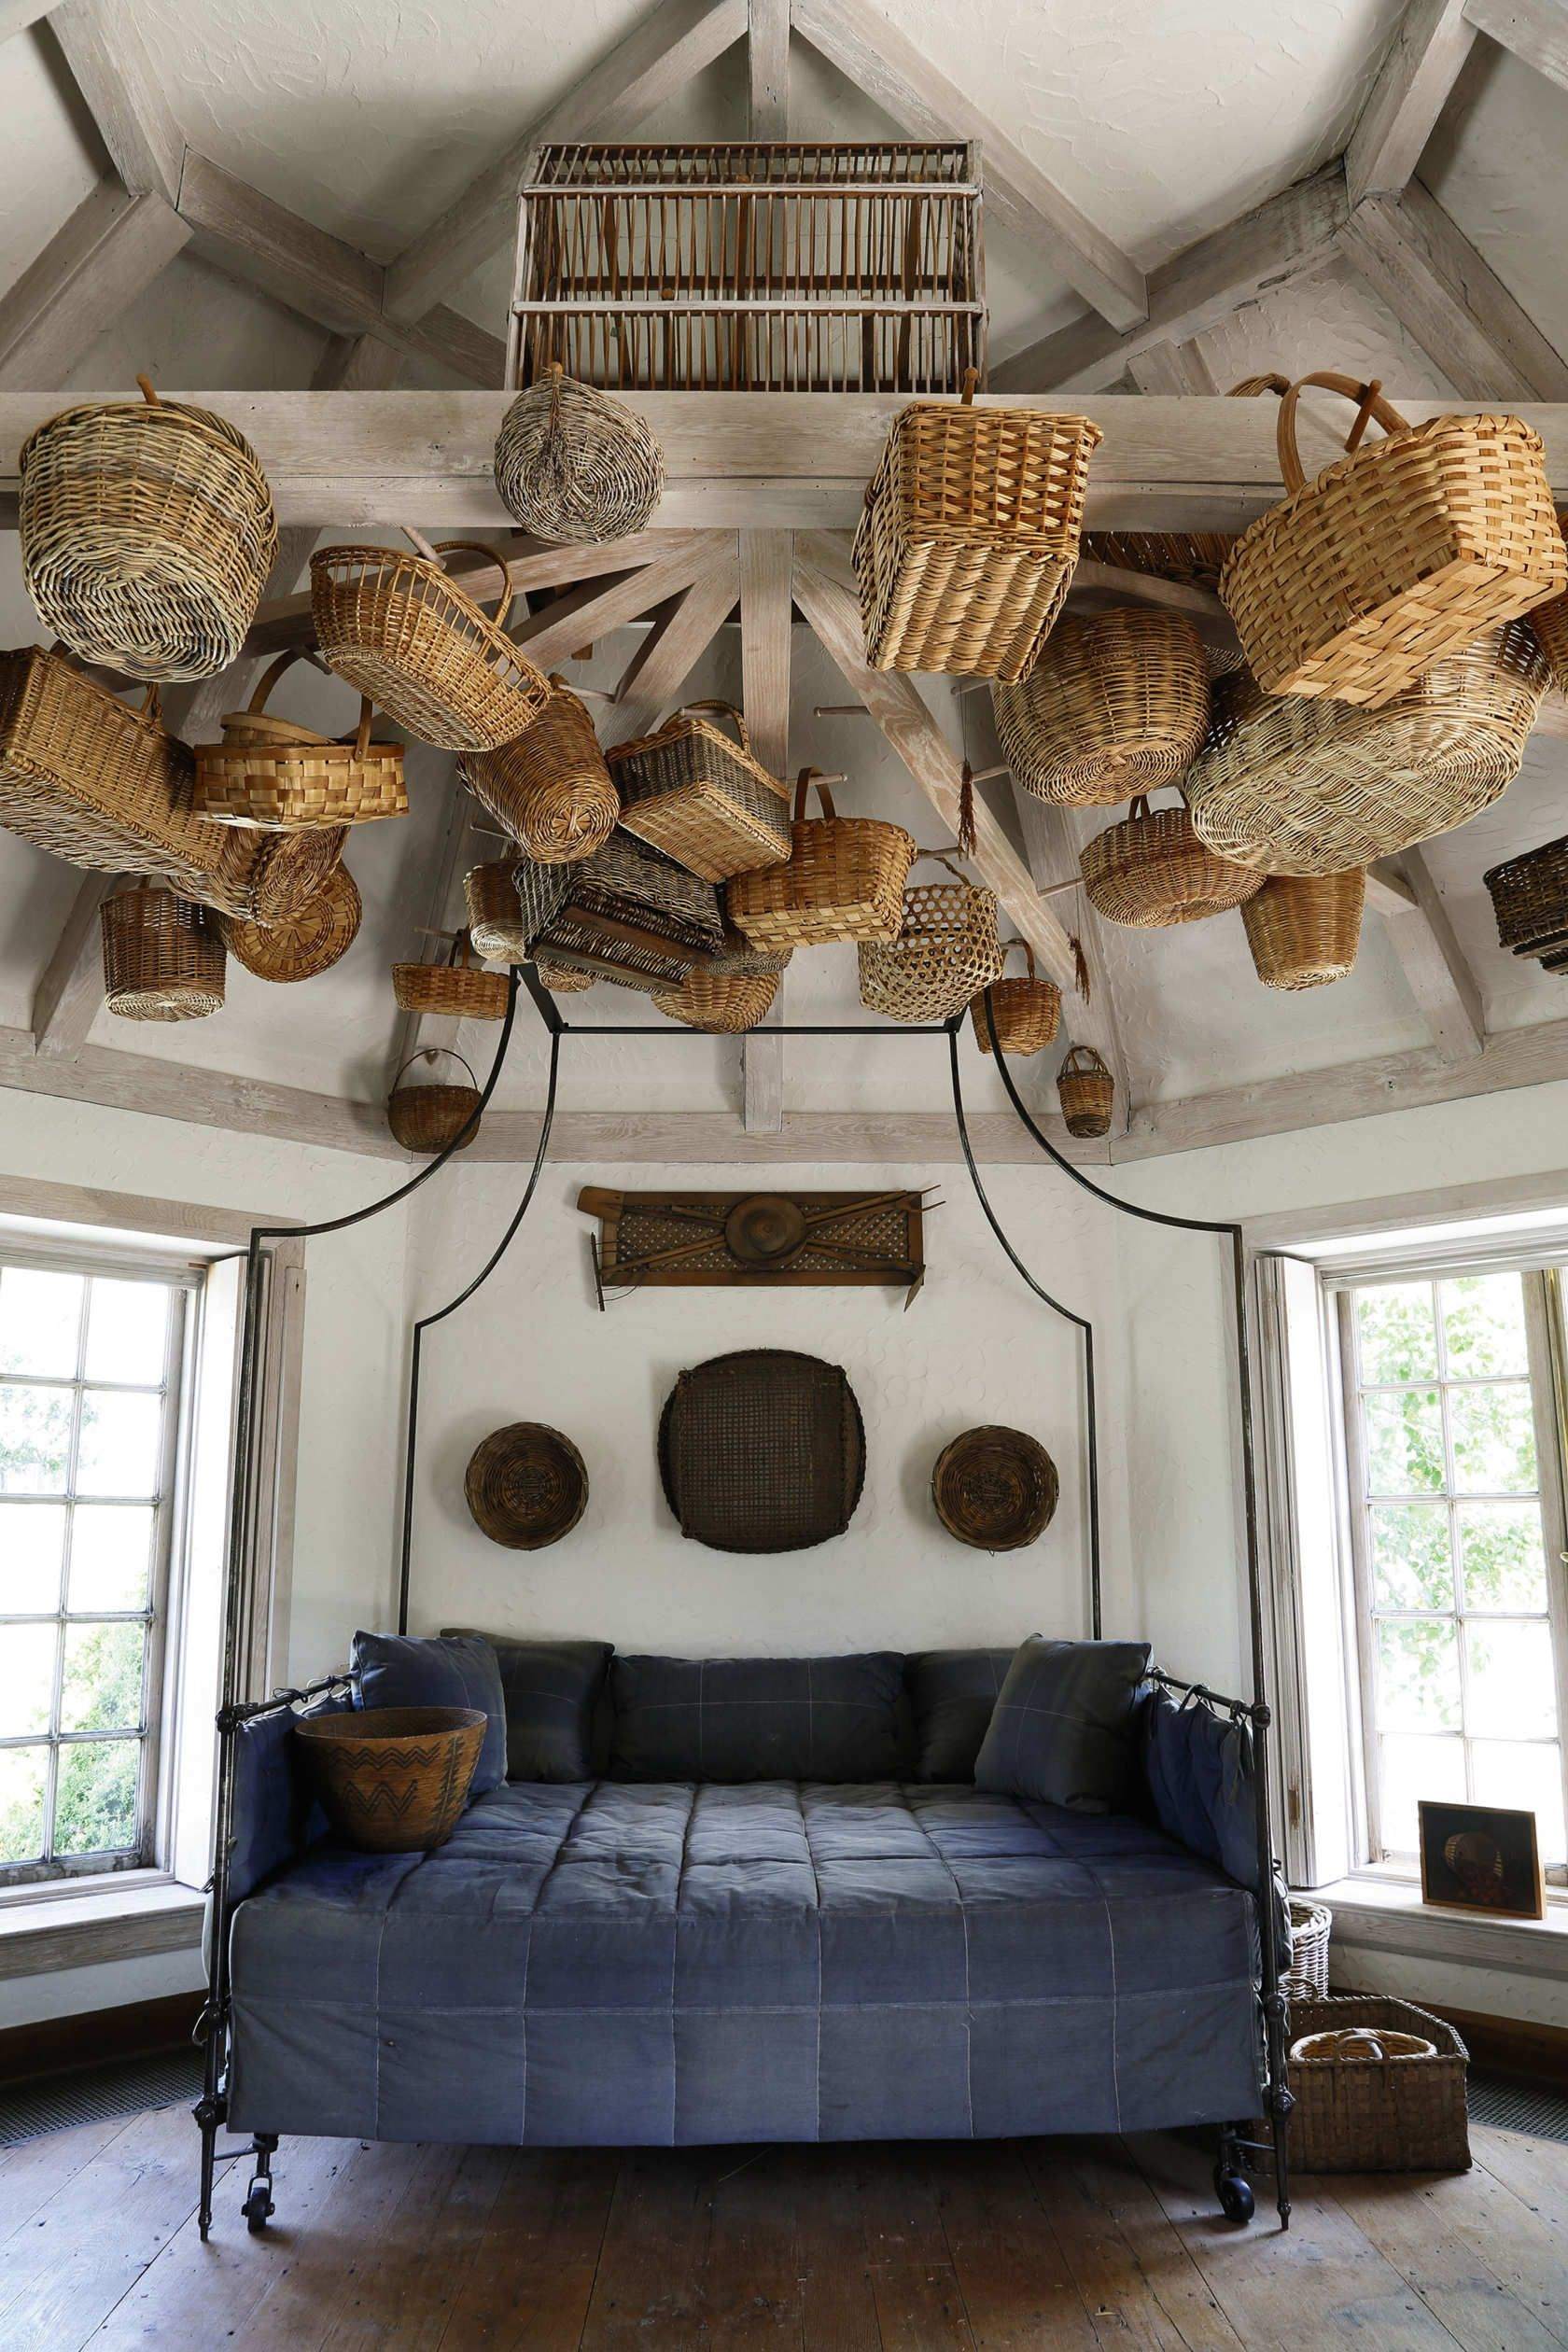 Bunny Mellon's Oak Spring Farm Estate guest bedroom with hanging baskets